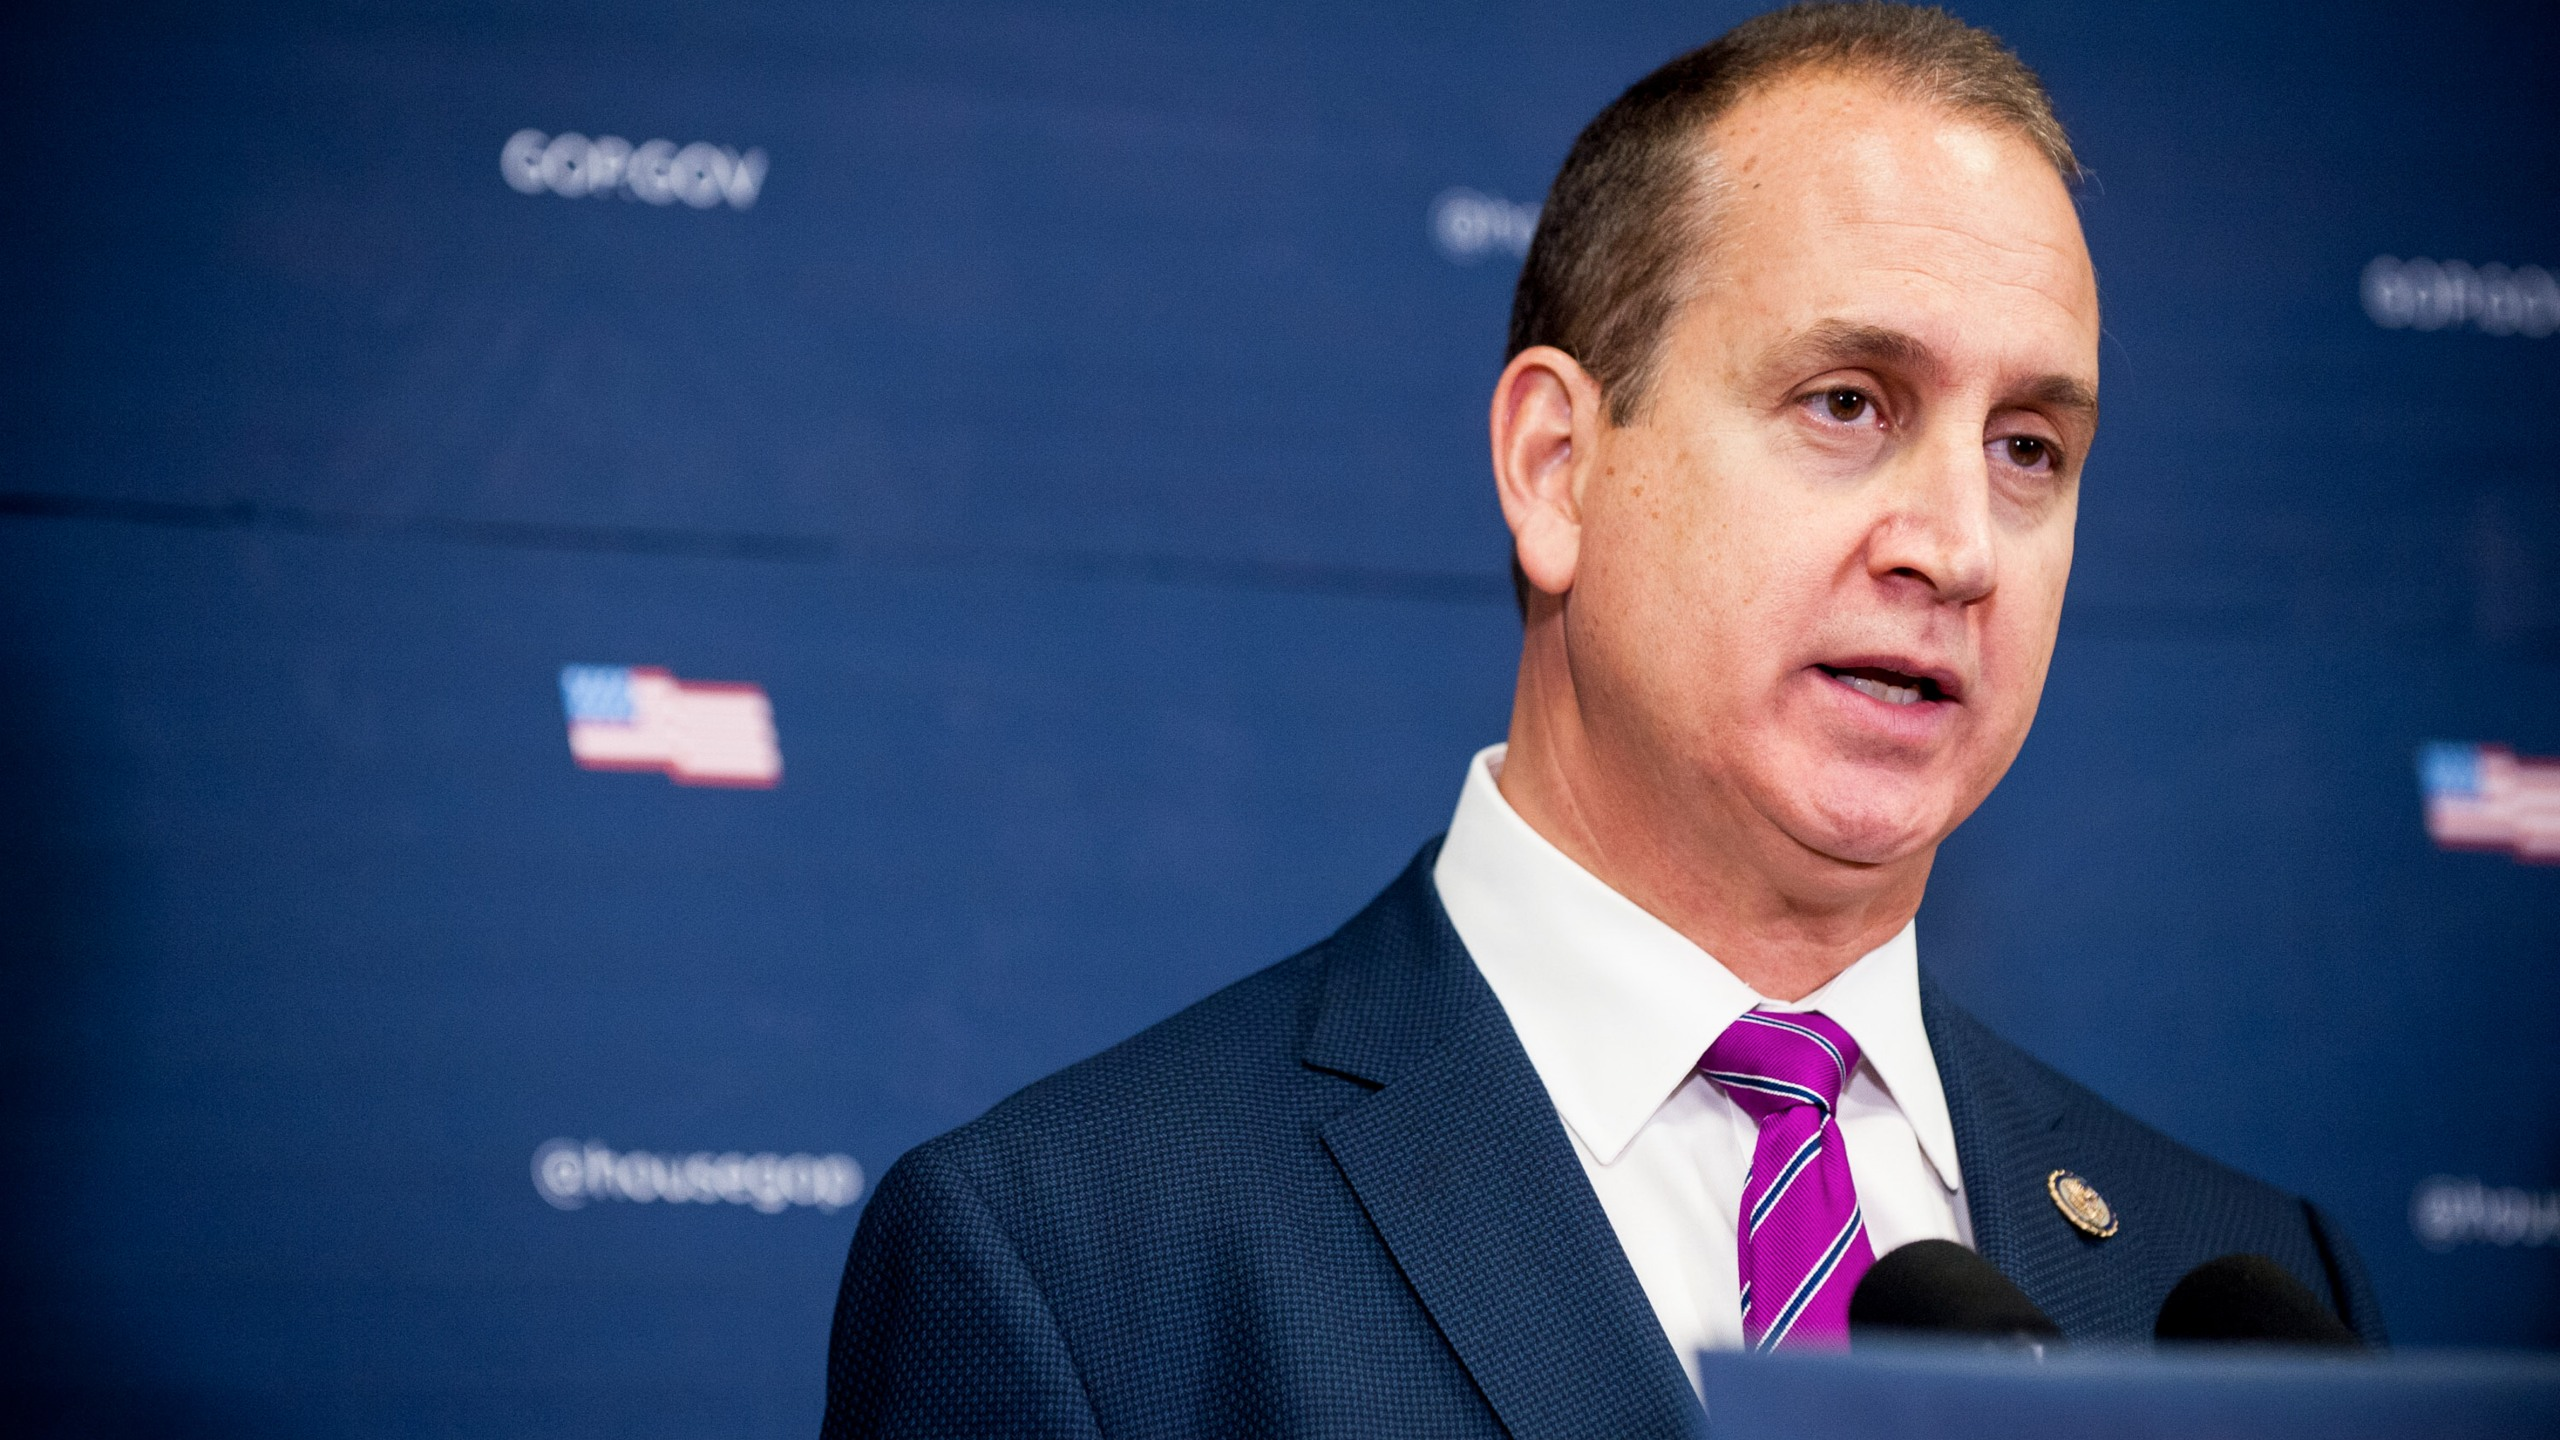 Republican Rep. Mario Diaz-Balart of Florida has become the first member of Congress to test positive for coronavirus, he tweeted on Wednesday. (Pete Marovich/Getty Images)